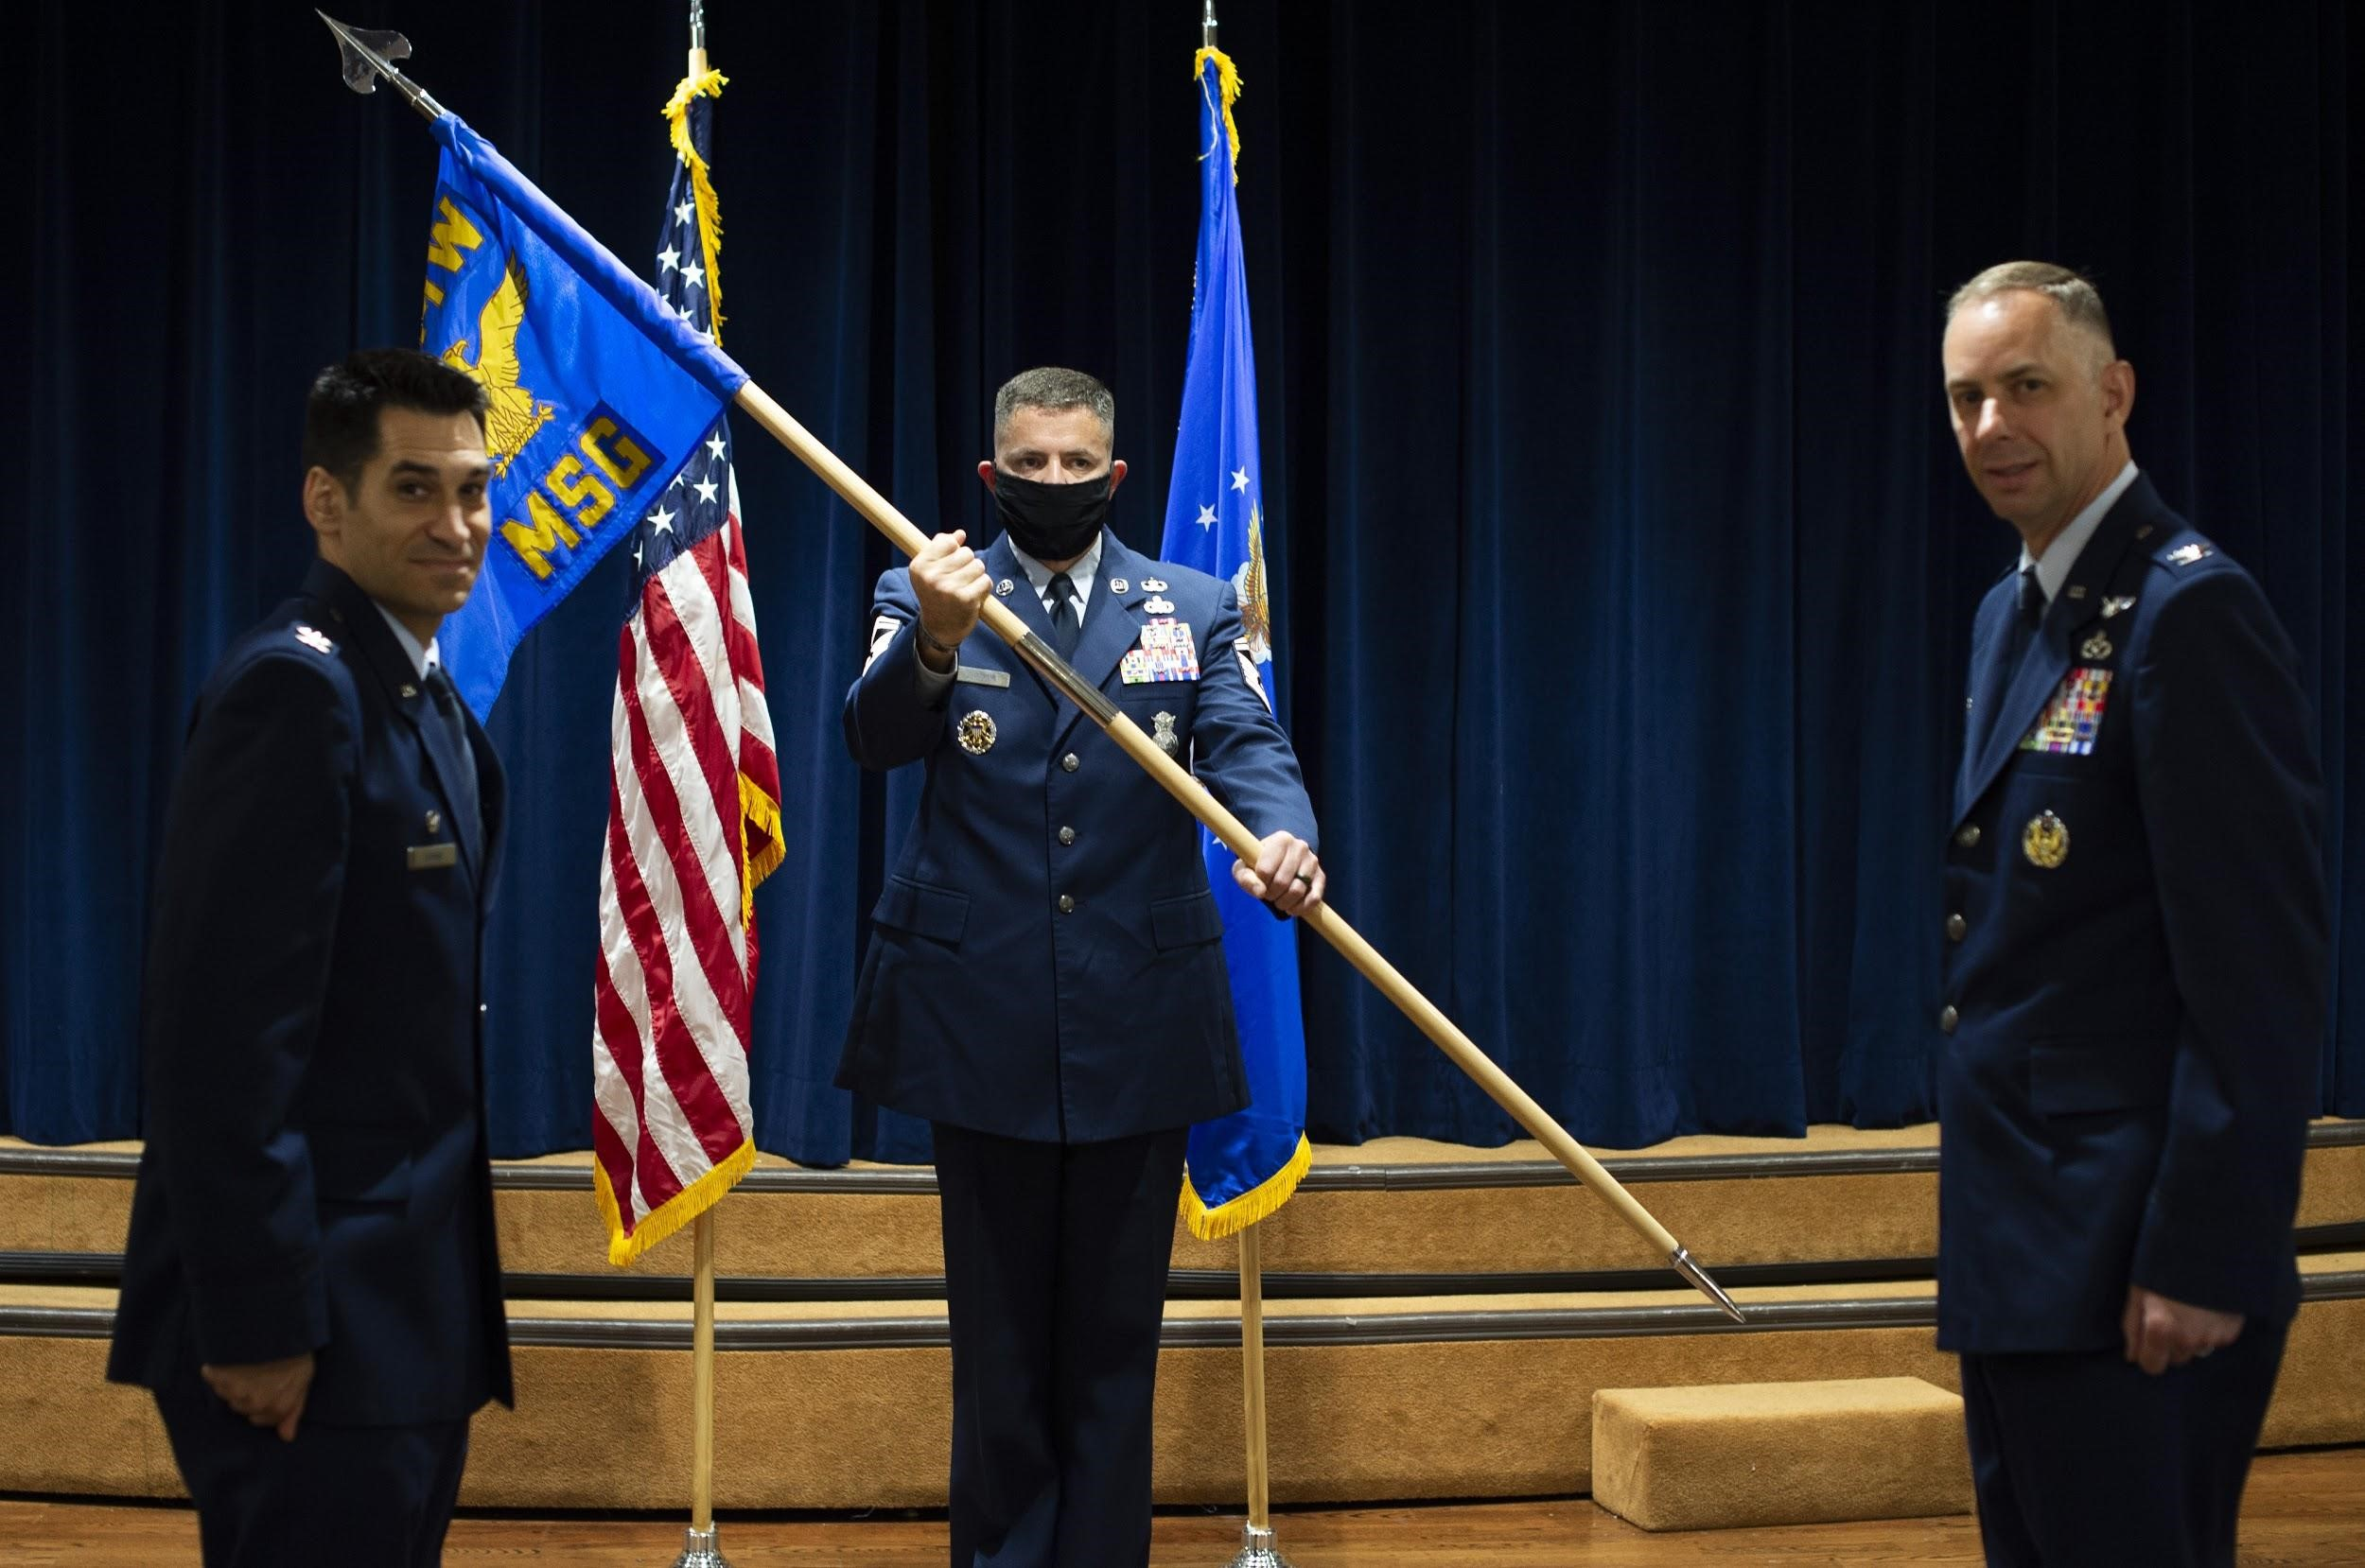 MacDill's newest commanders: ready to lead despite COVID-19